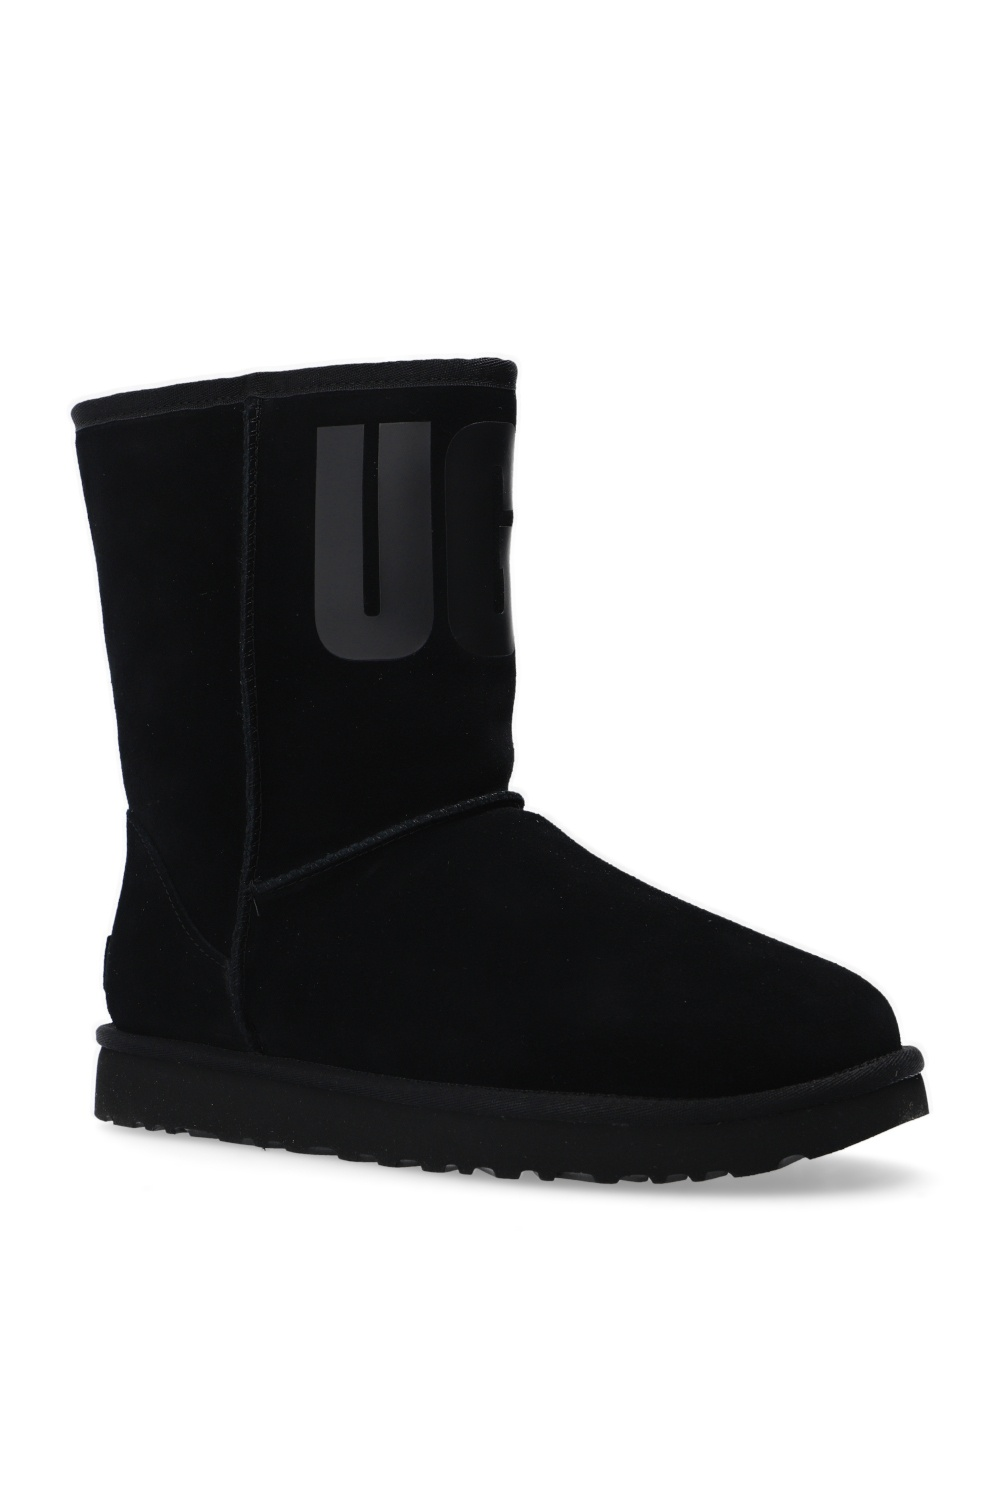 UGG 'W Classic Short' suede snow boots